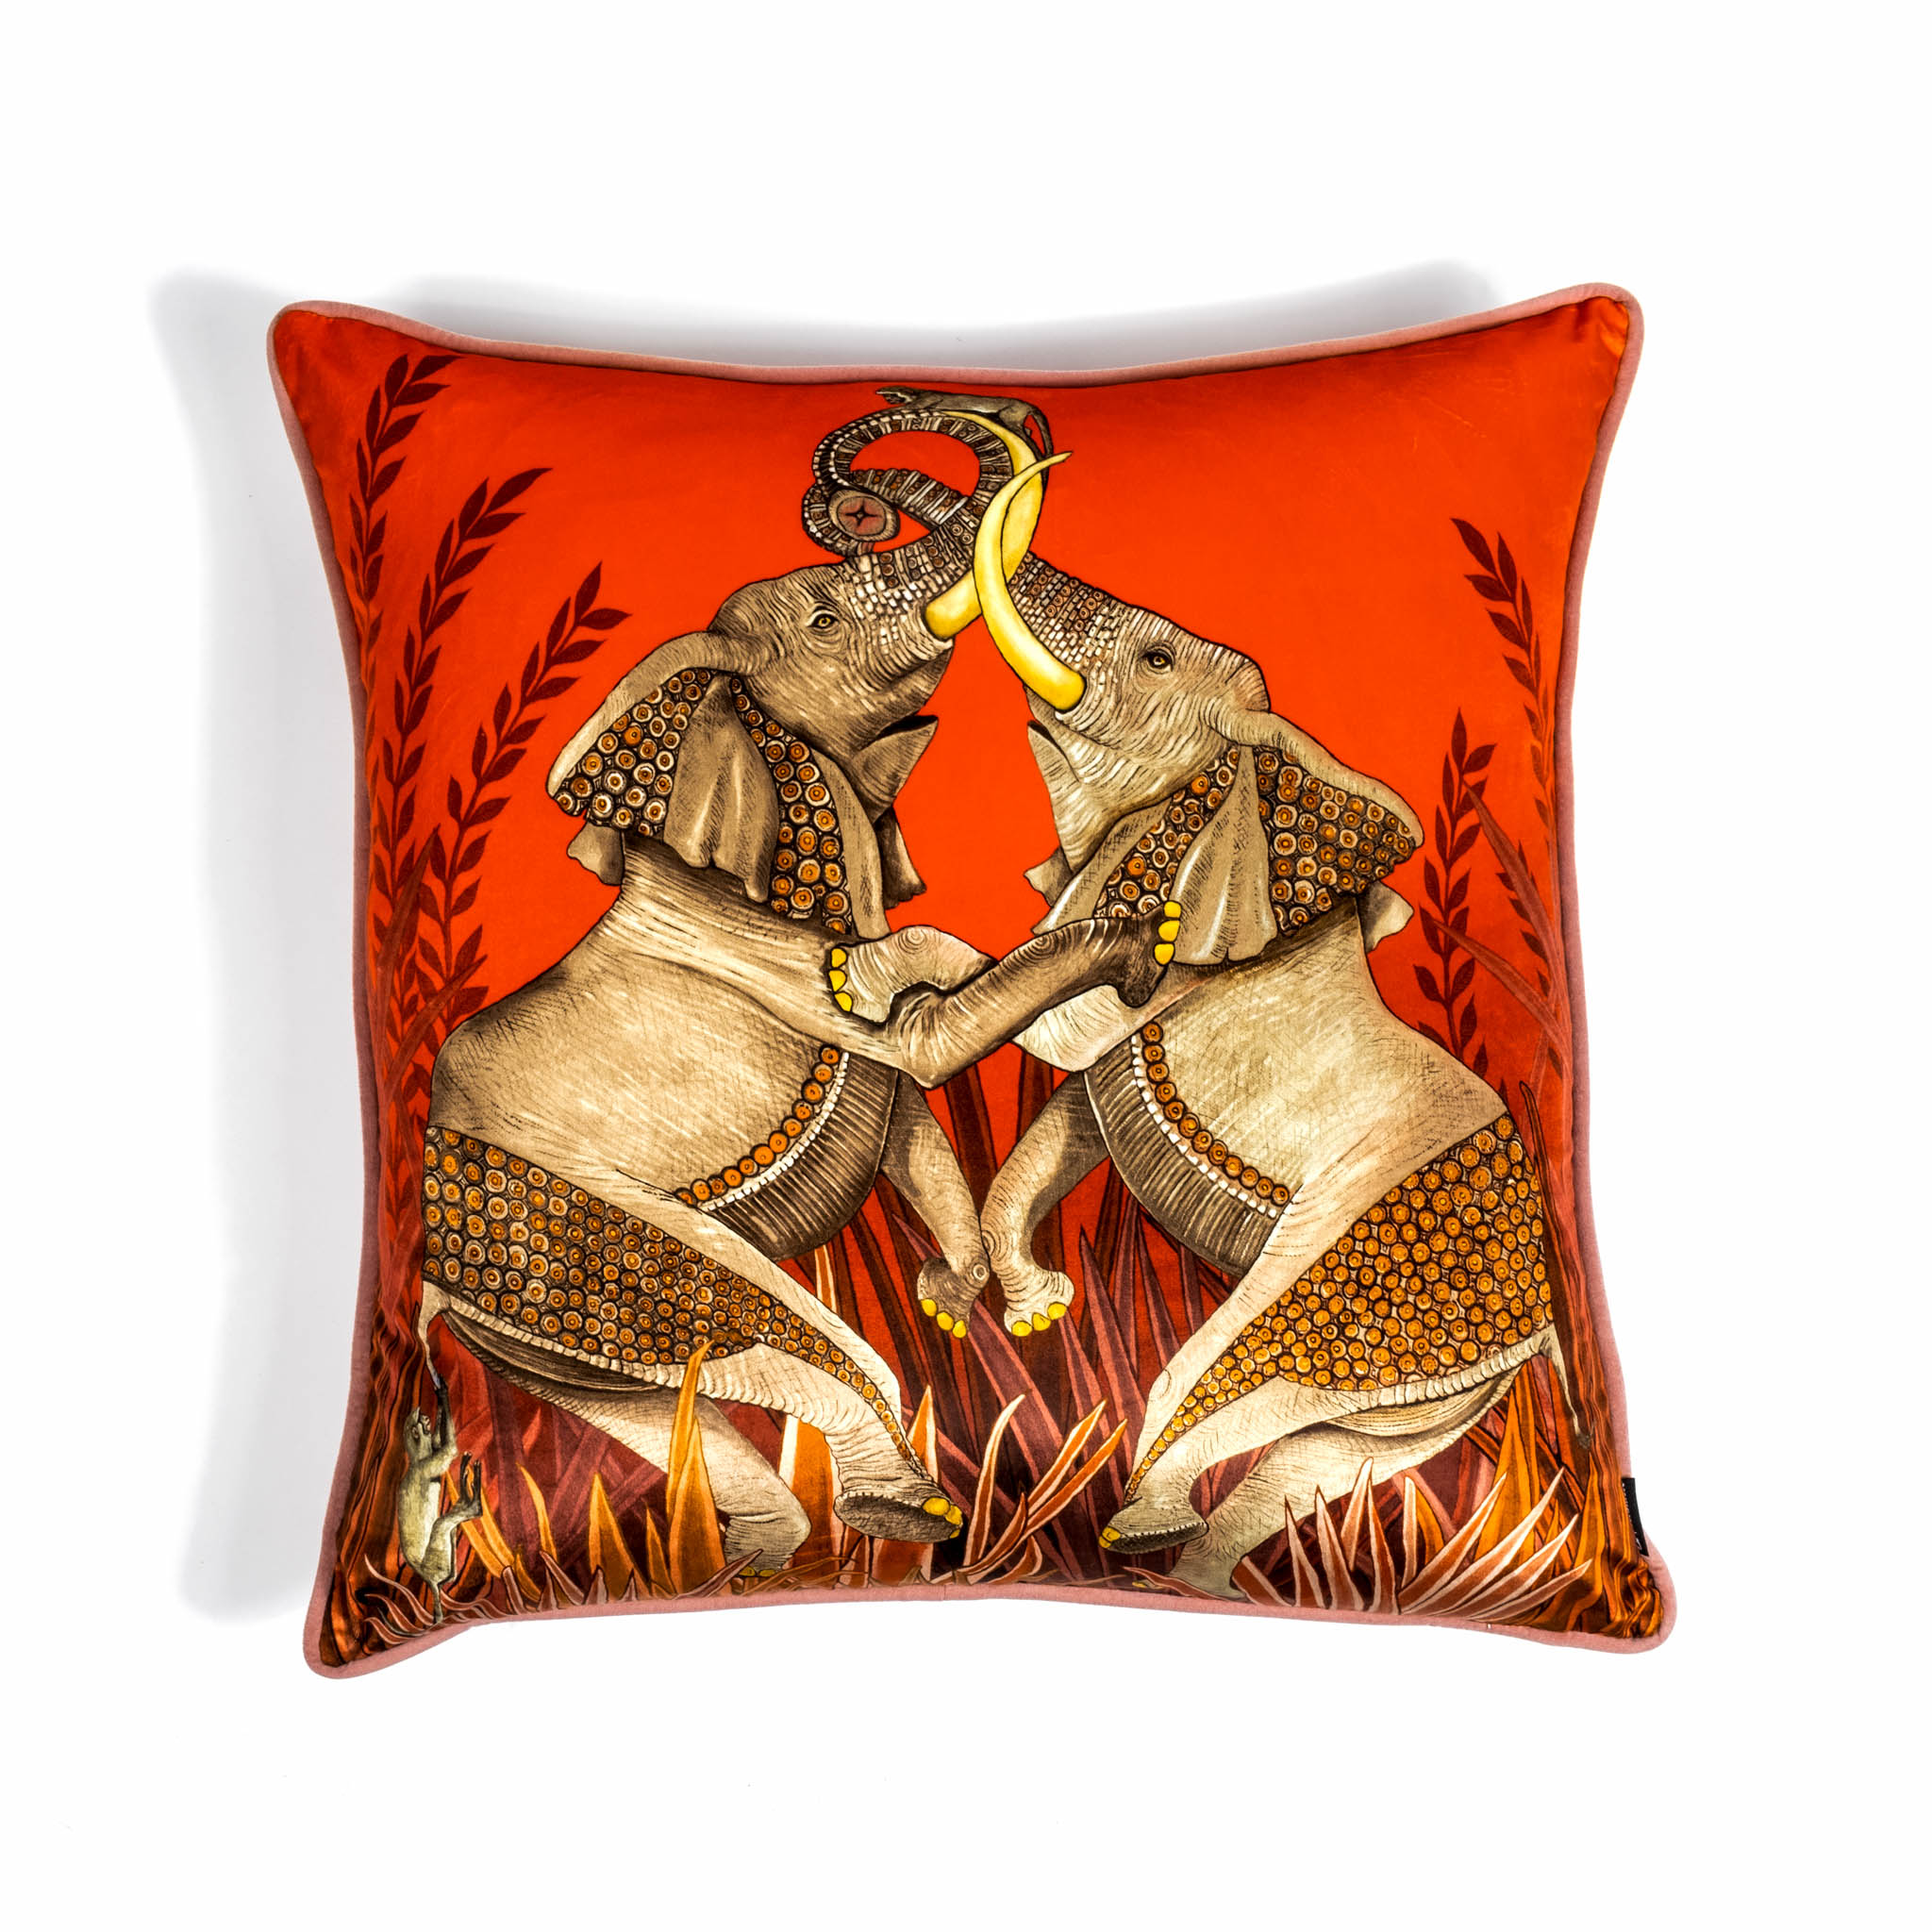 Dancing Elephants Pillow - Velvet - Sunset